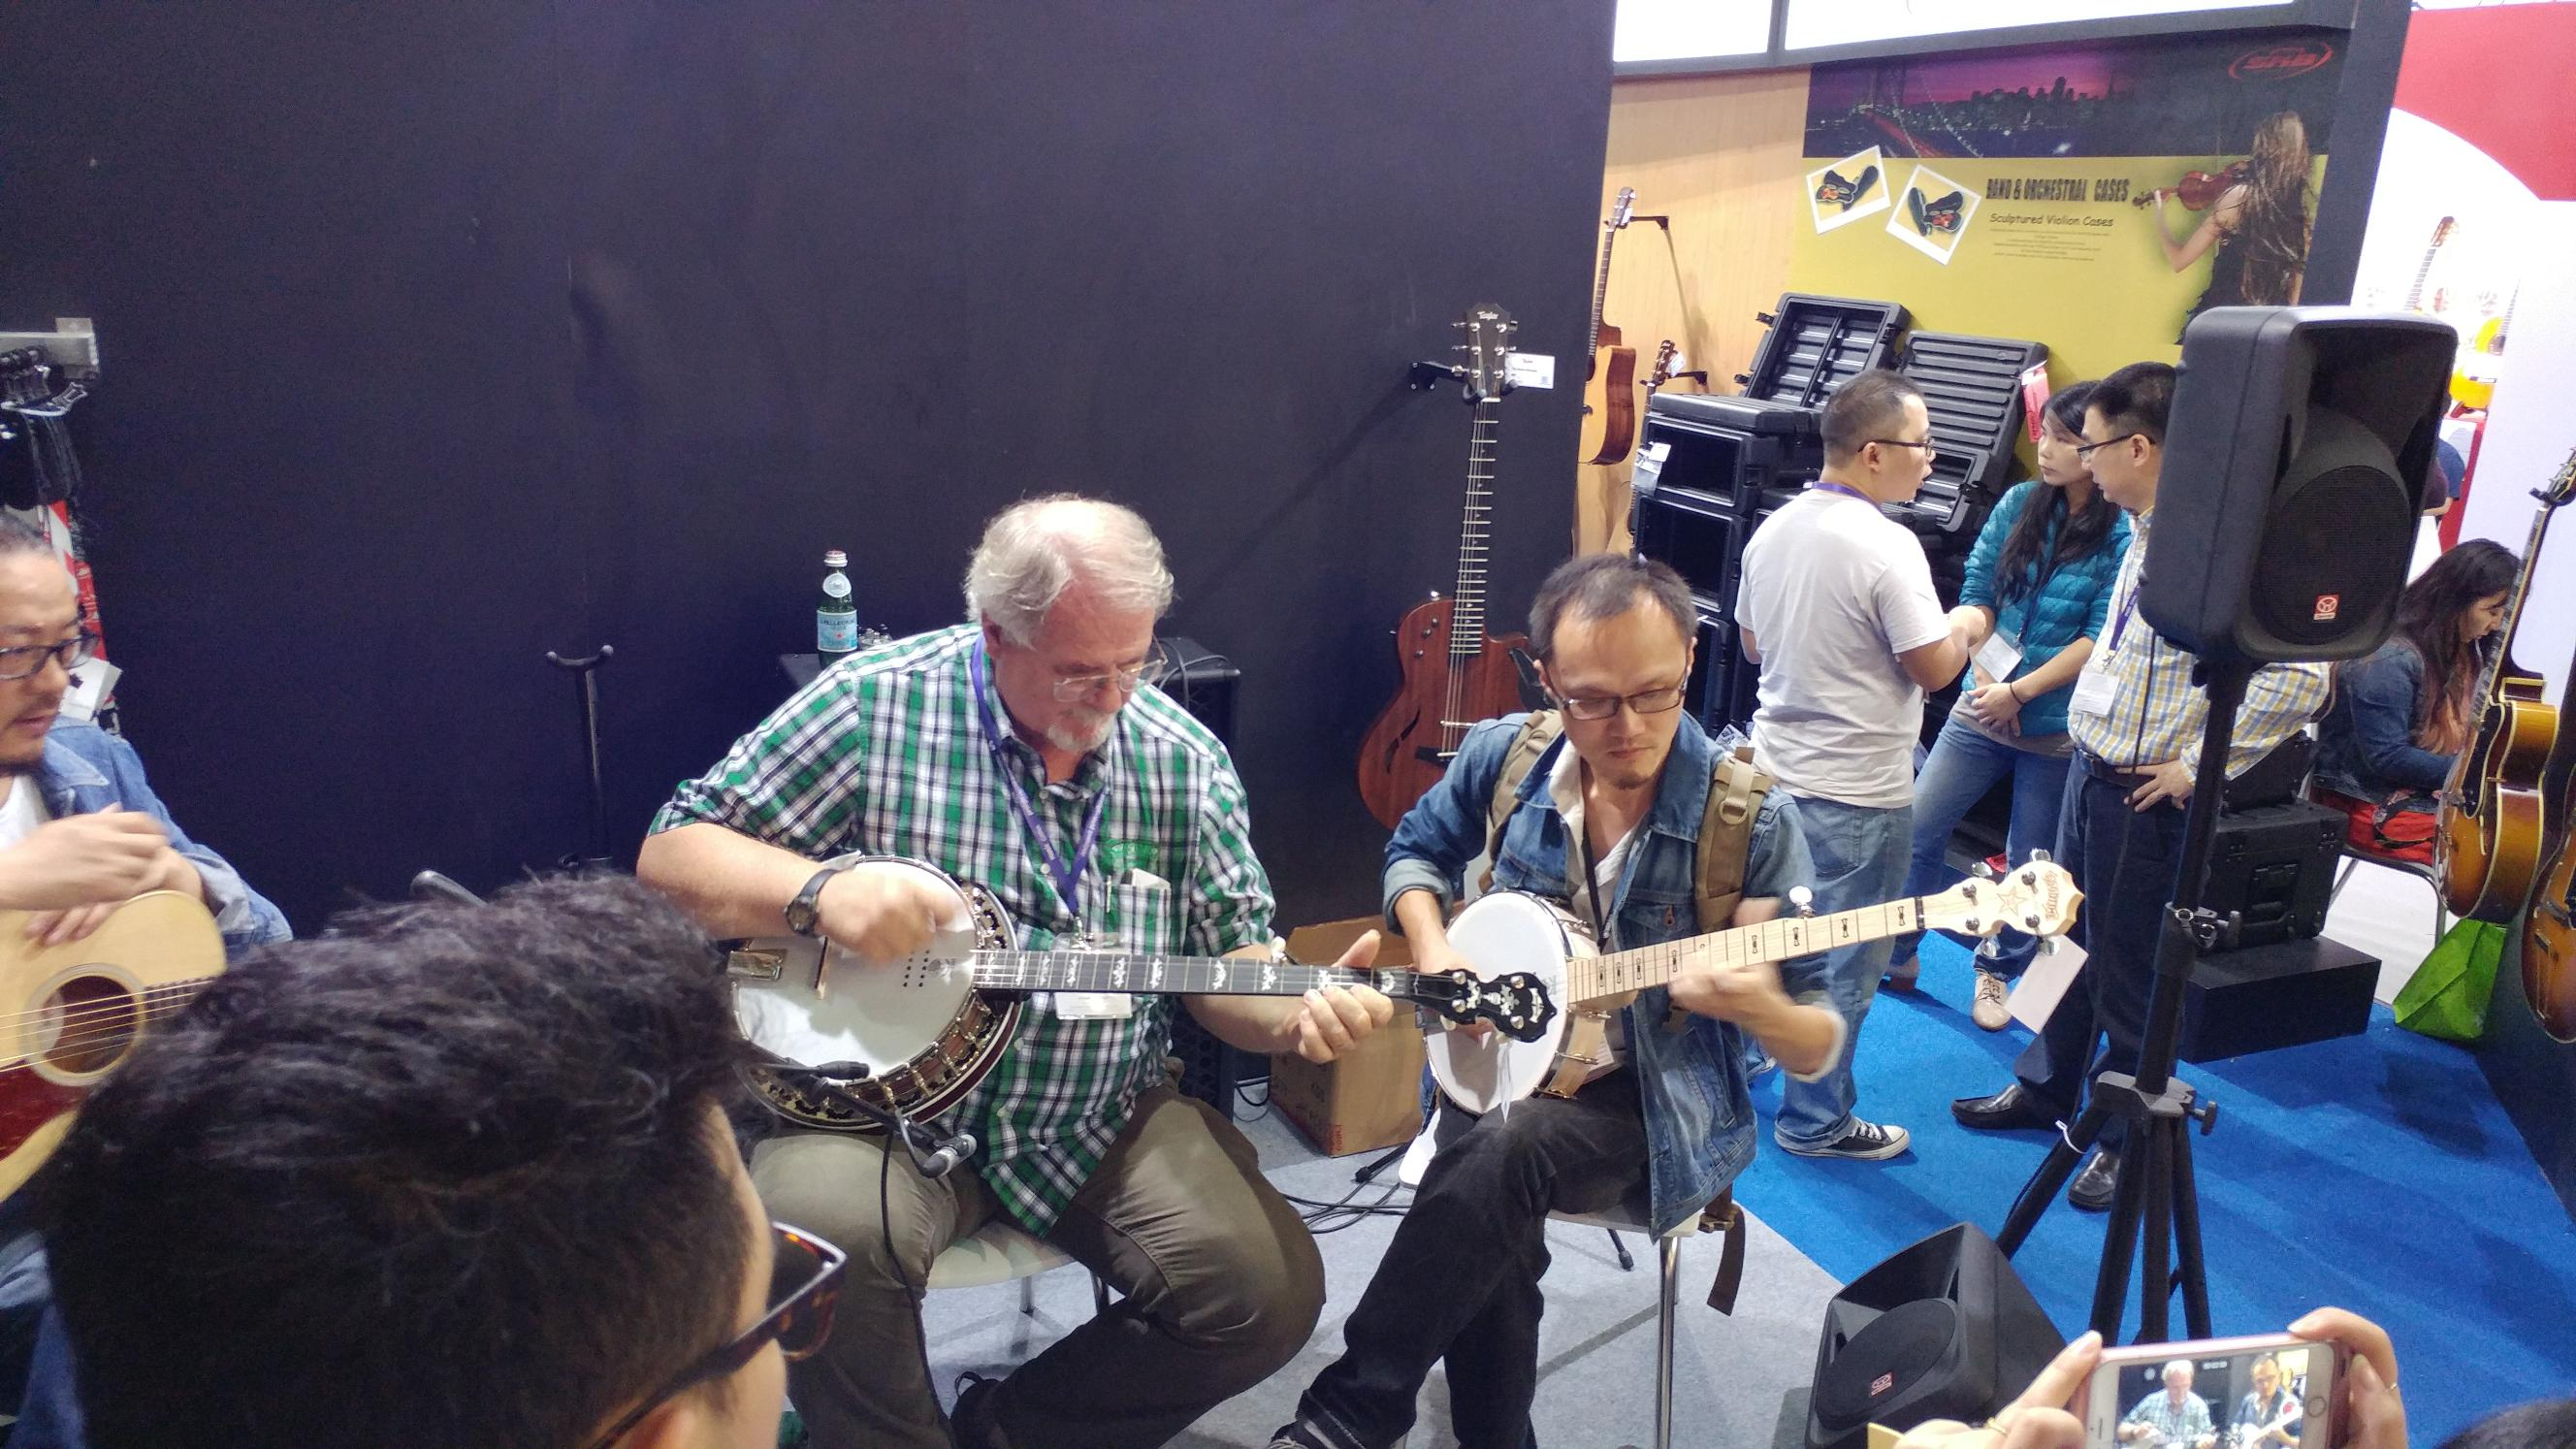 Greg Deering and Eric Shi at the Music China Show